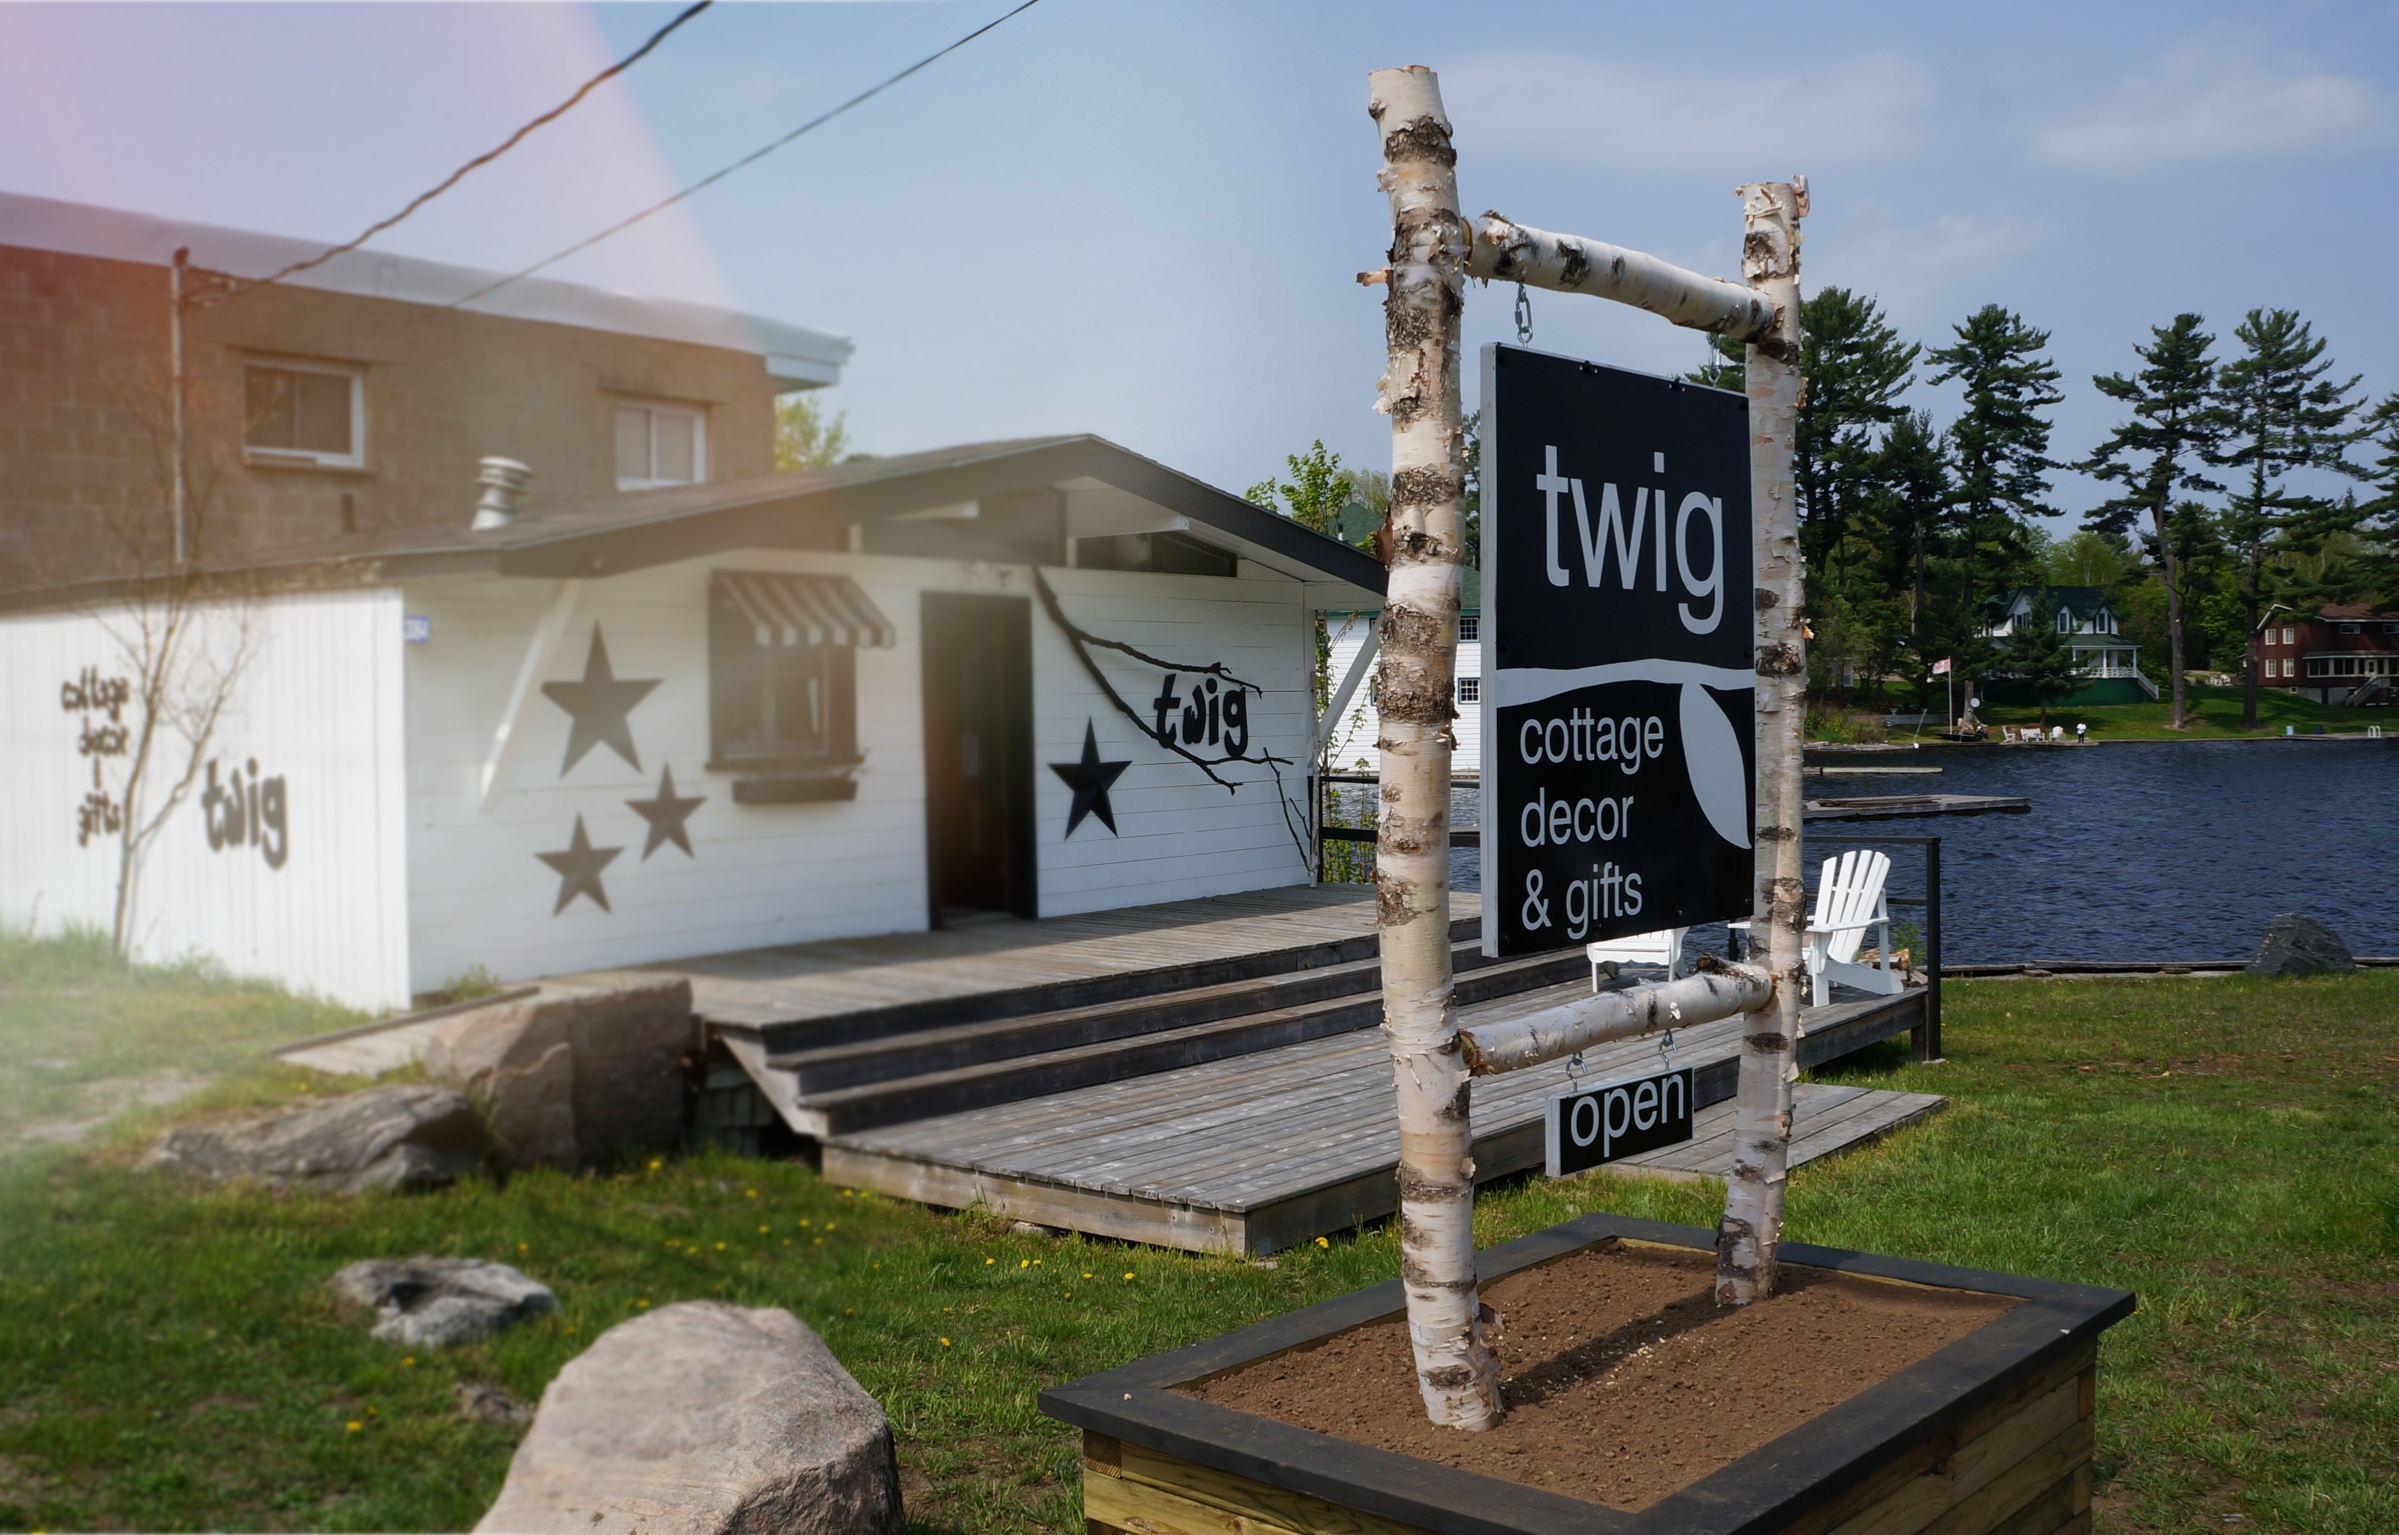 Original Twig location (circa 2014)